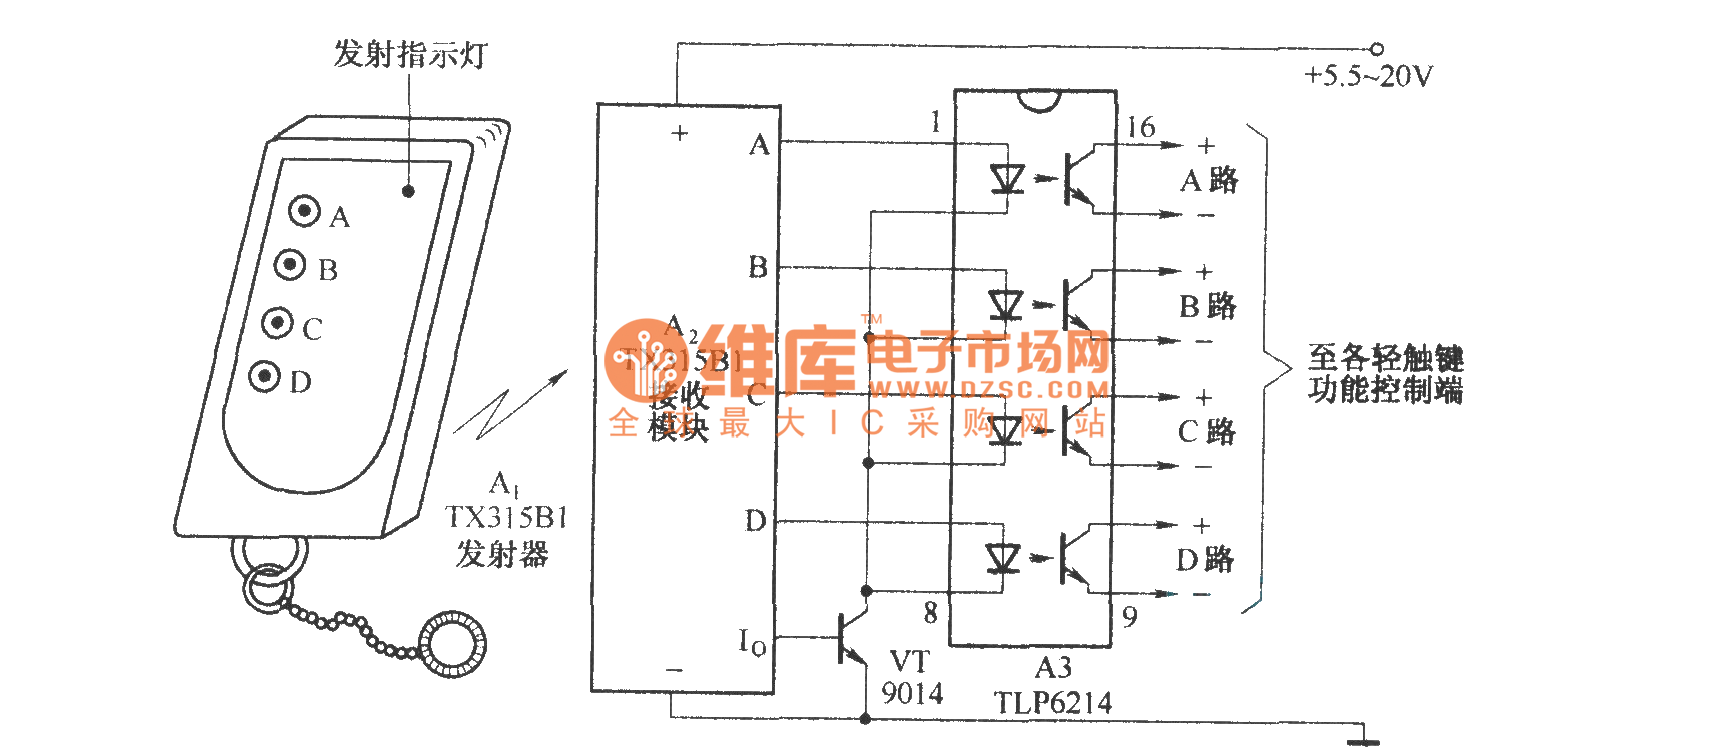 201141524452314 universal home appliances remote control circuit diagram